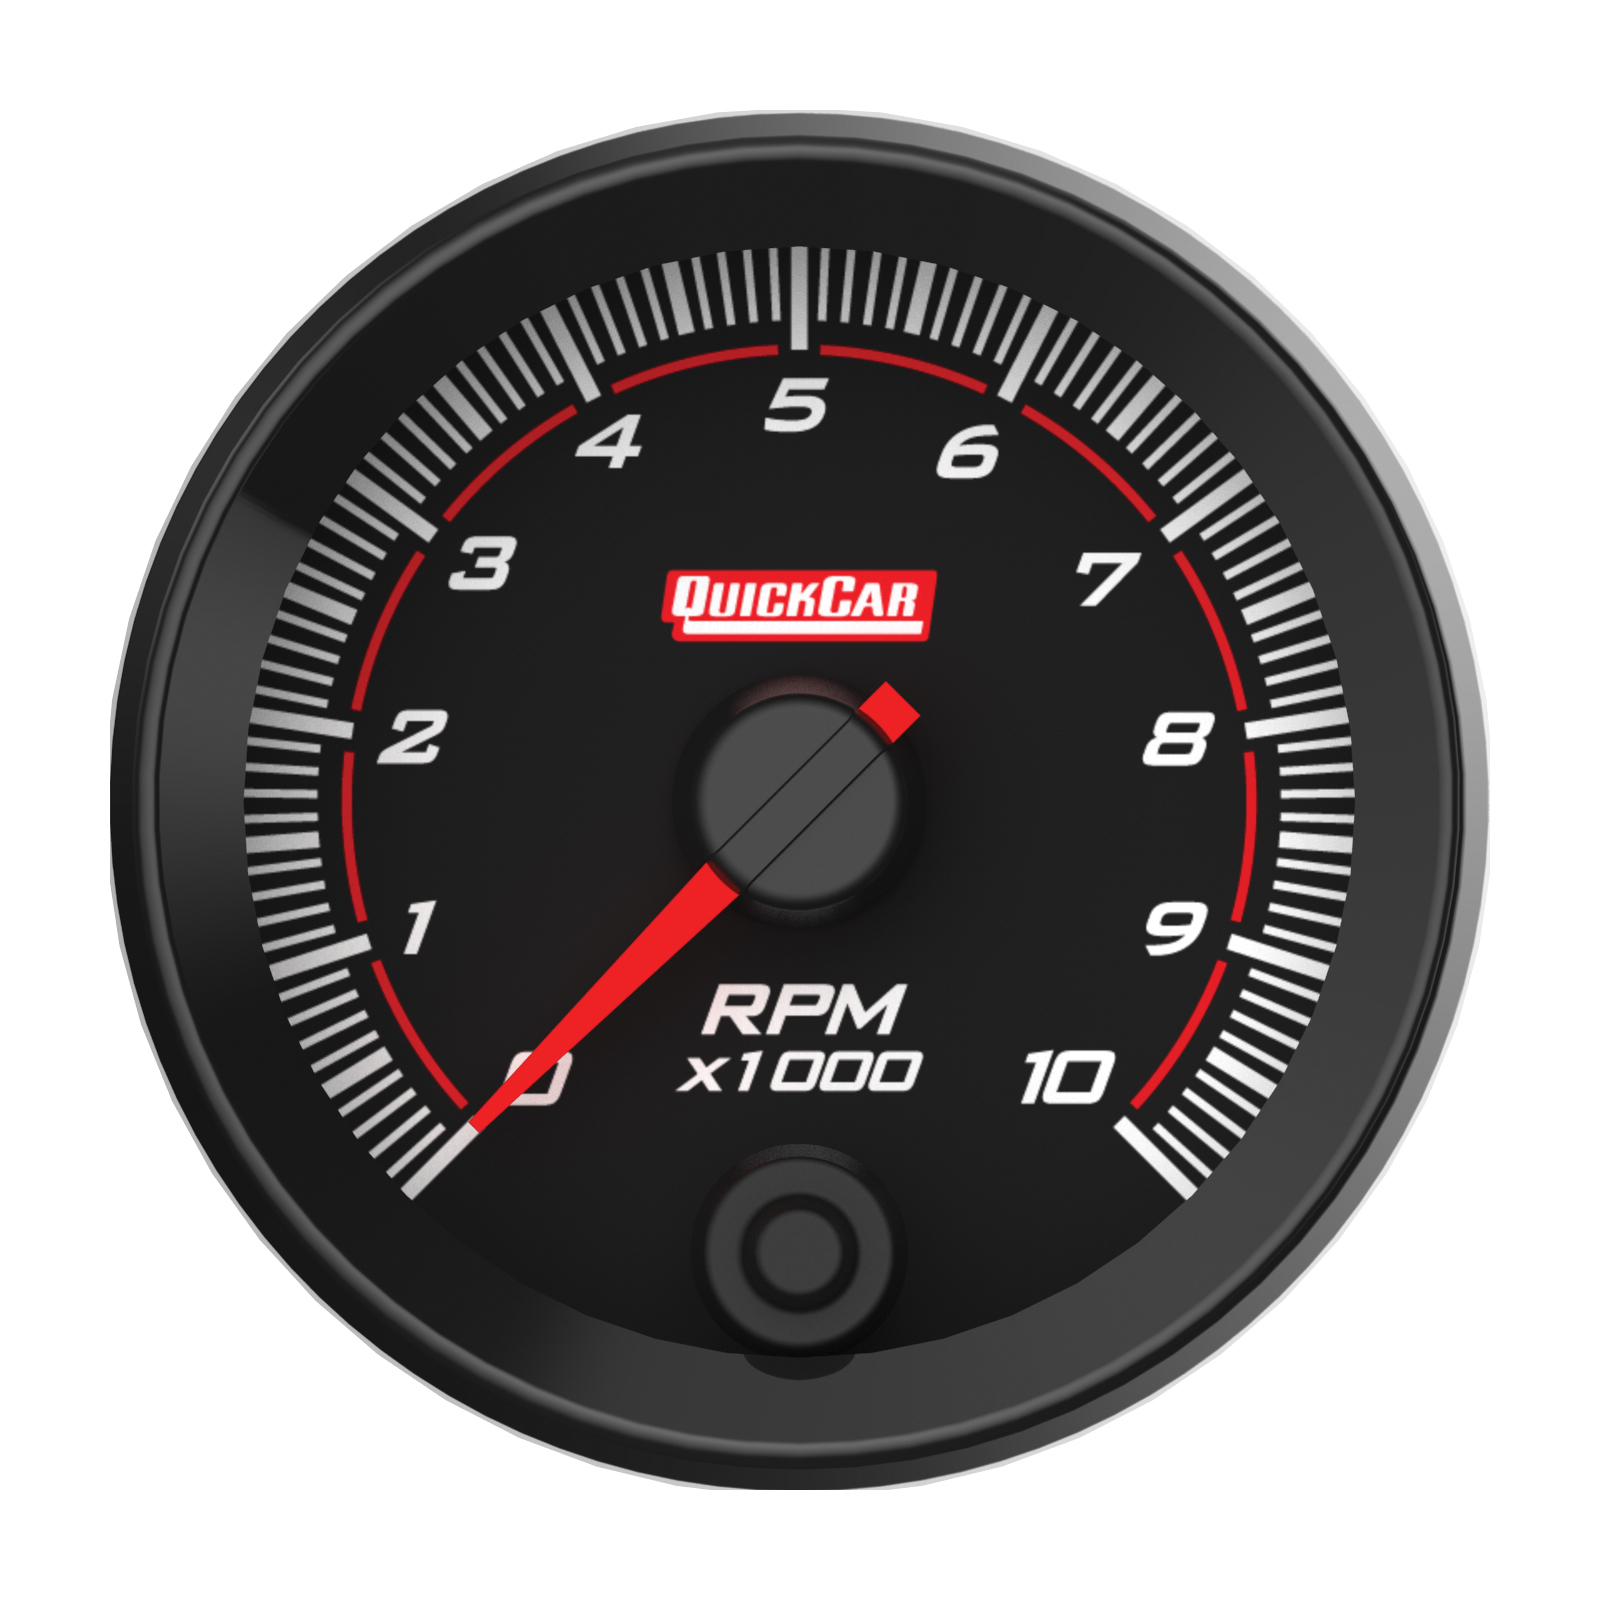 Quickcar Racing Products 69-001 Tachometer, Redline, Single Recall, 10000 RPM, Electric, Analog, 2-5/8 in Diameter, Memory, Black Face, Each